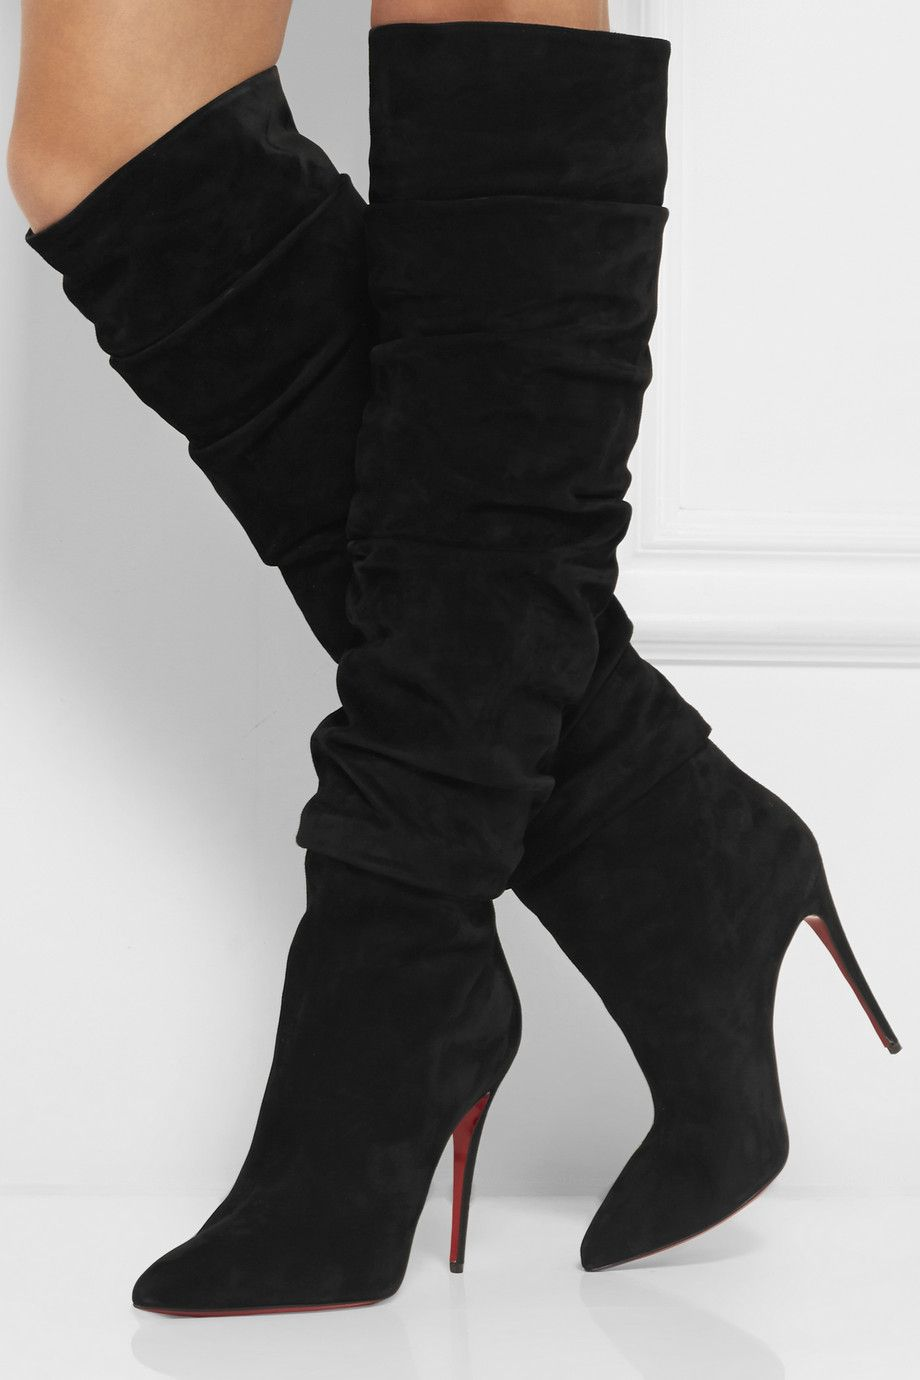 brand new ccabe 2b36d Christian Louboutin 'Ishtar' Kneehigh Black Suede Boots ...